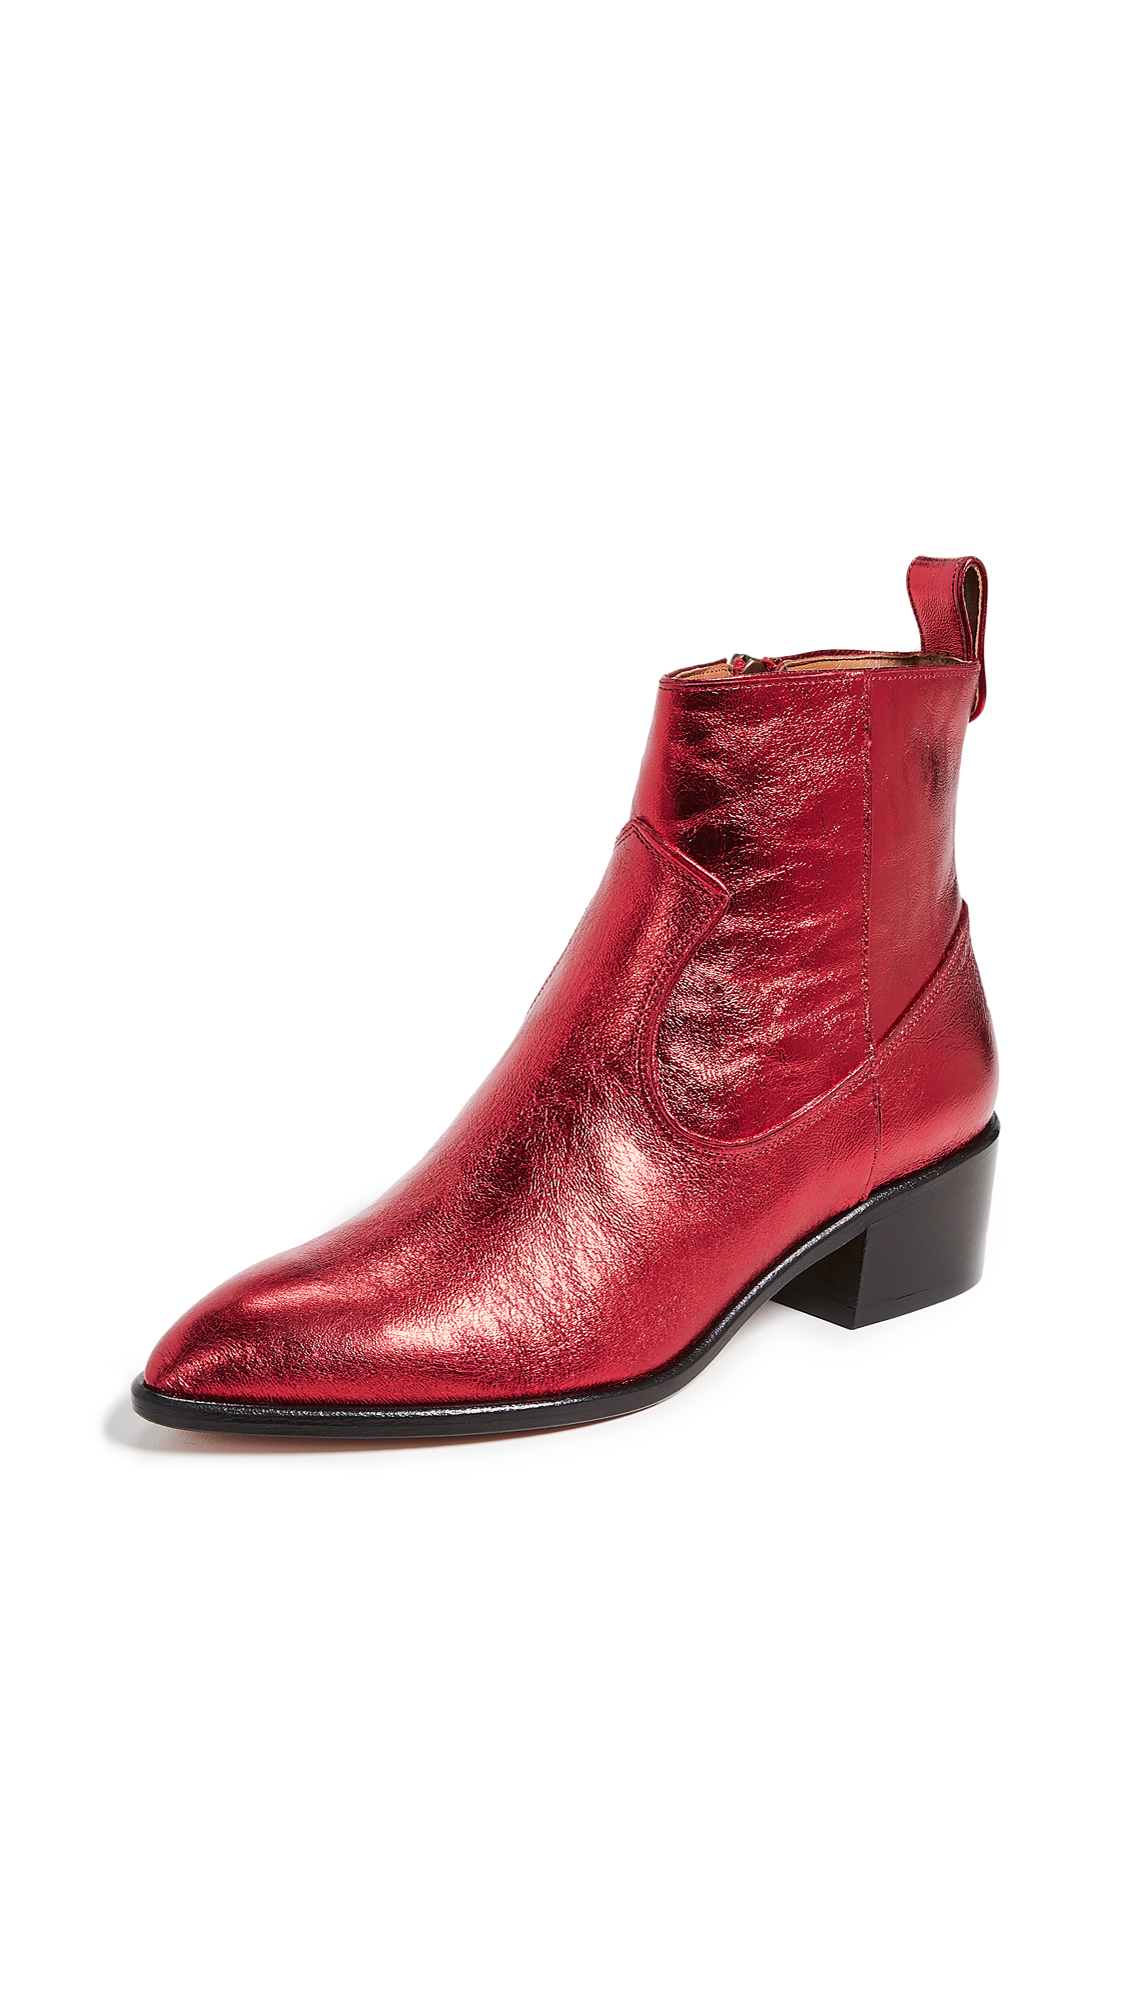 Veronica Beard Tanner Low Boots - Red